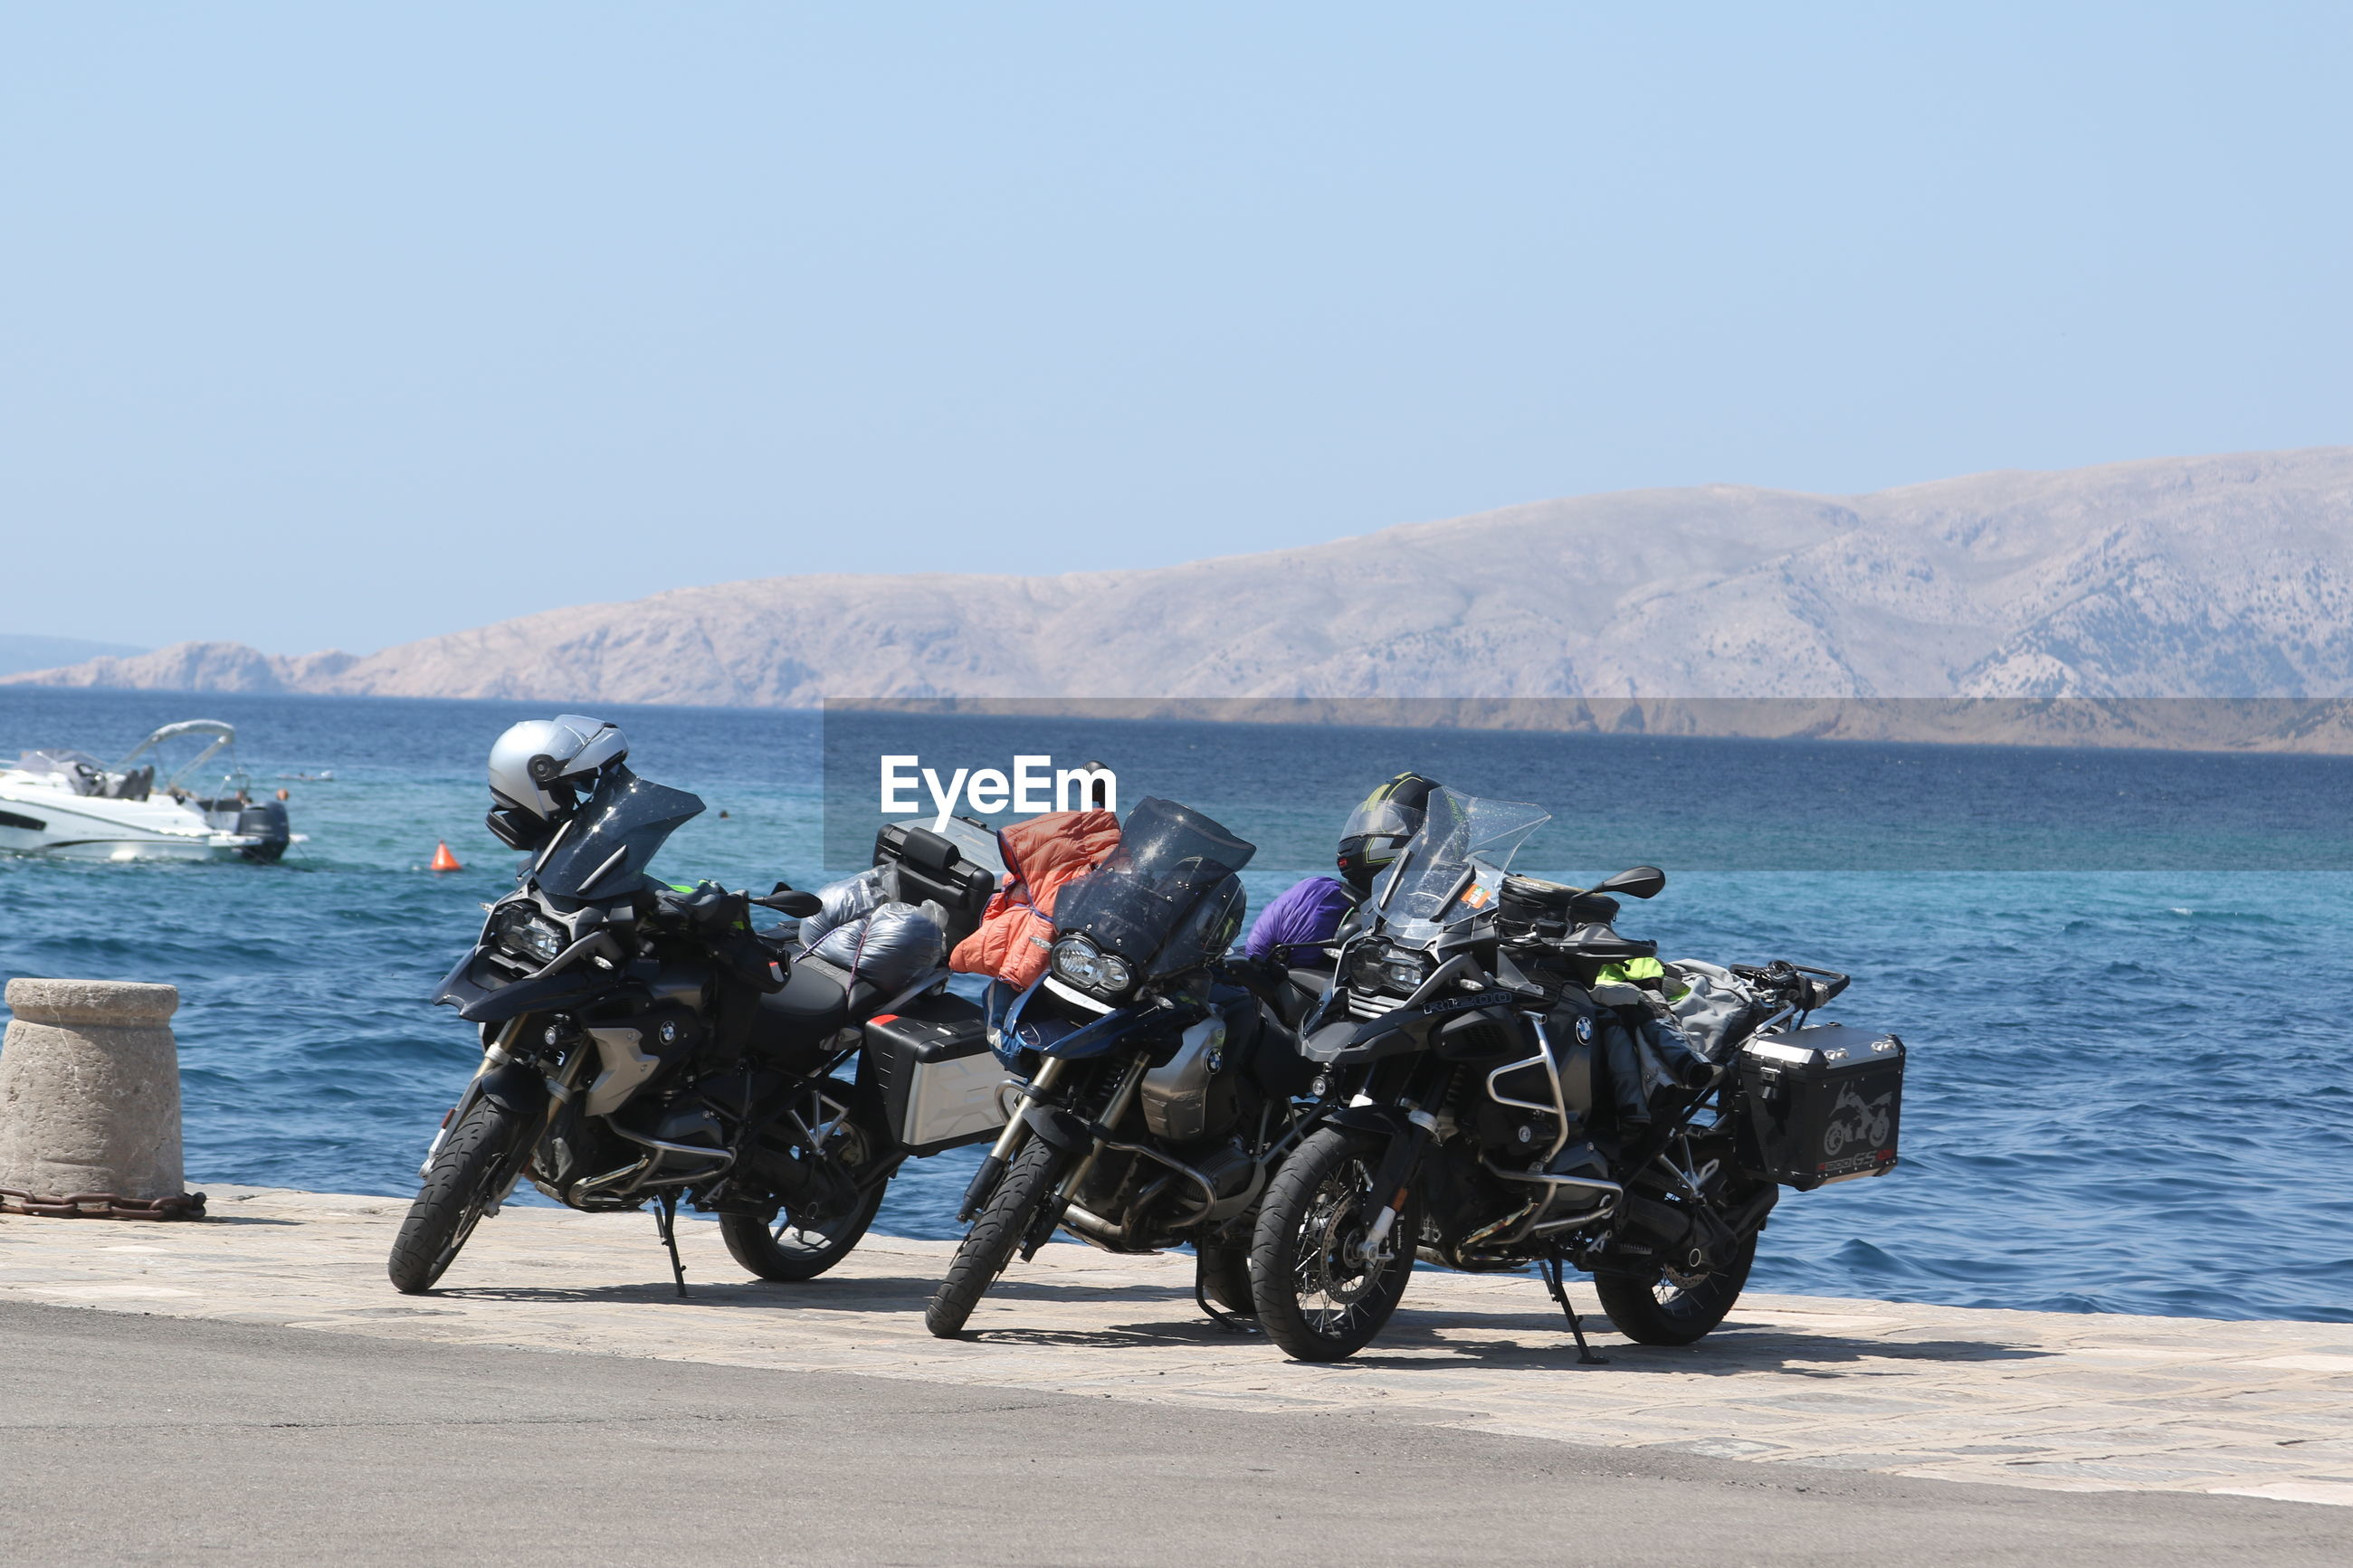 Motorcycles by sea against clear sky